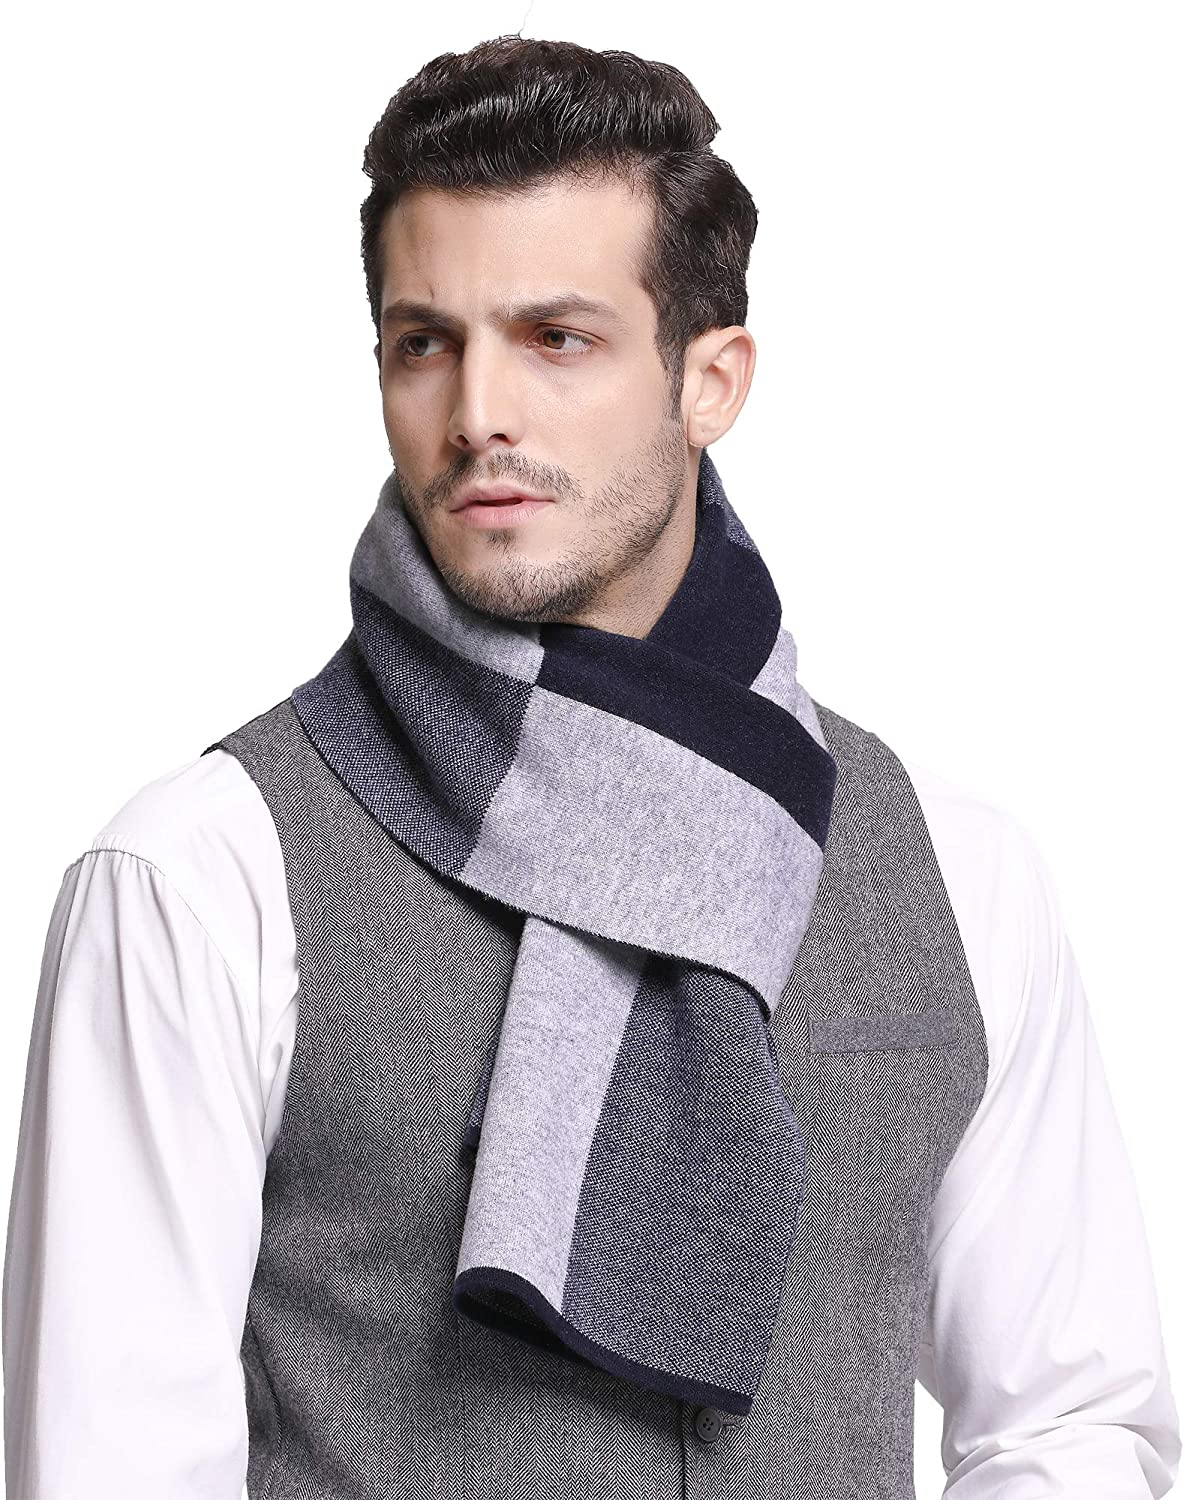 RIONA Men's 100% Australian Soft Merino Wool Knitted Plaid Warm Scarf with Gift Box (9201_Black) RIW9201Black